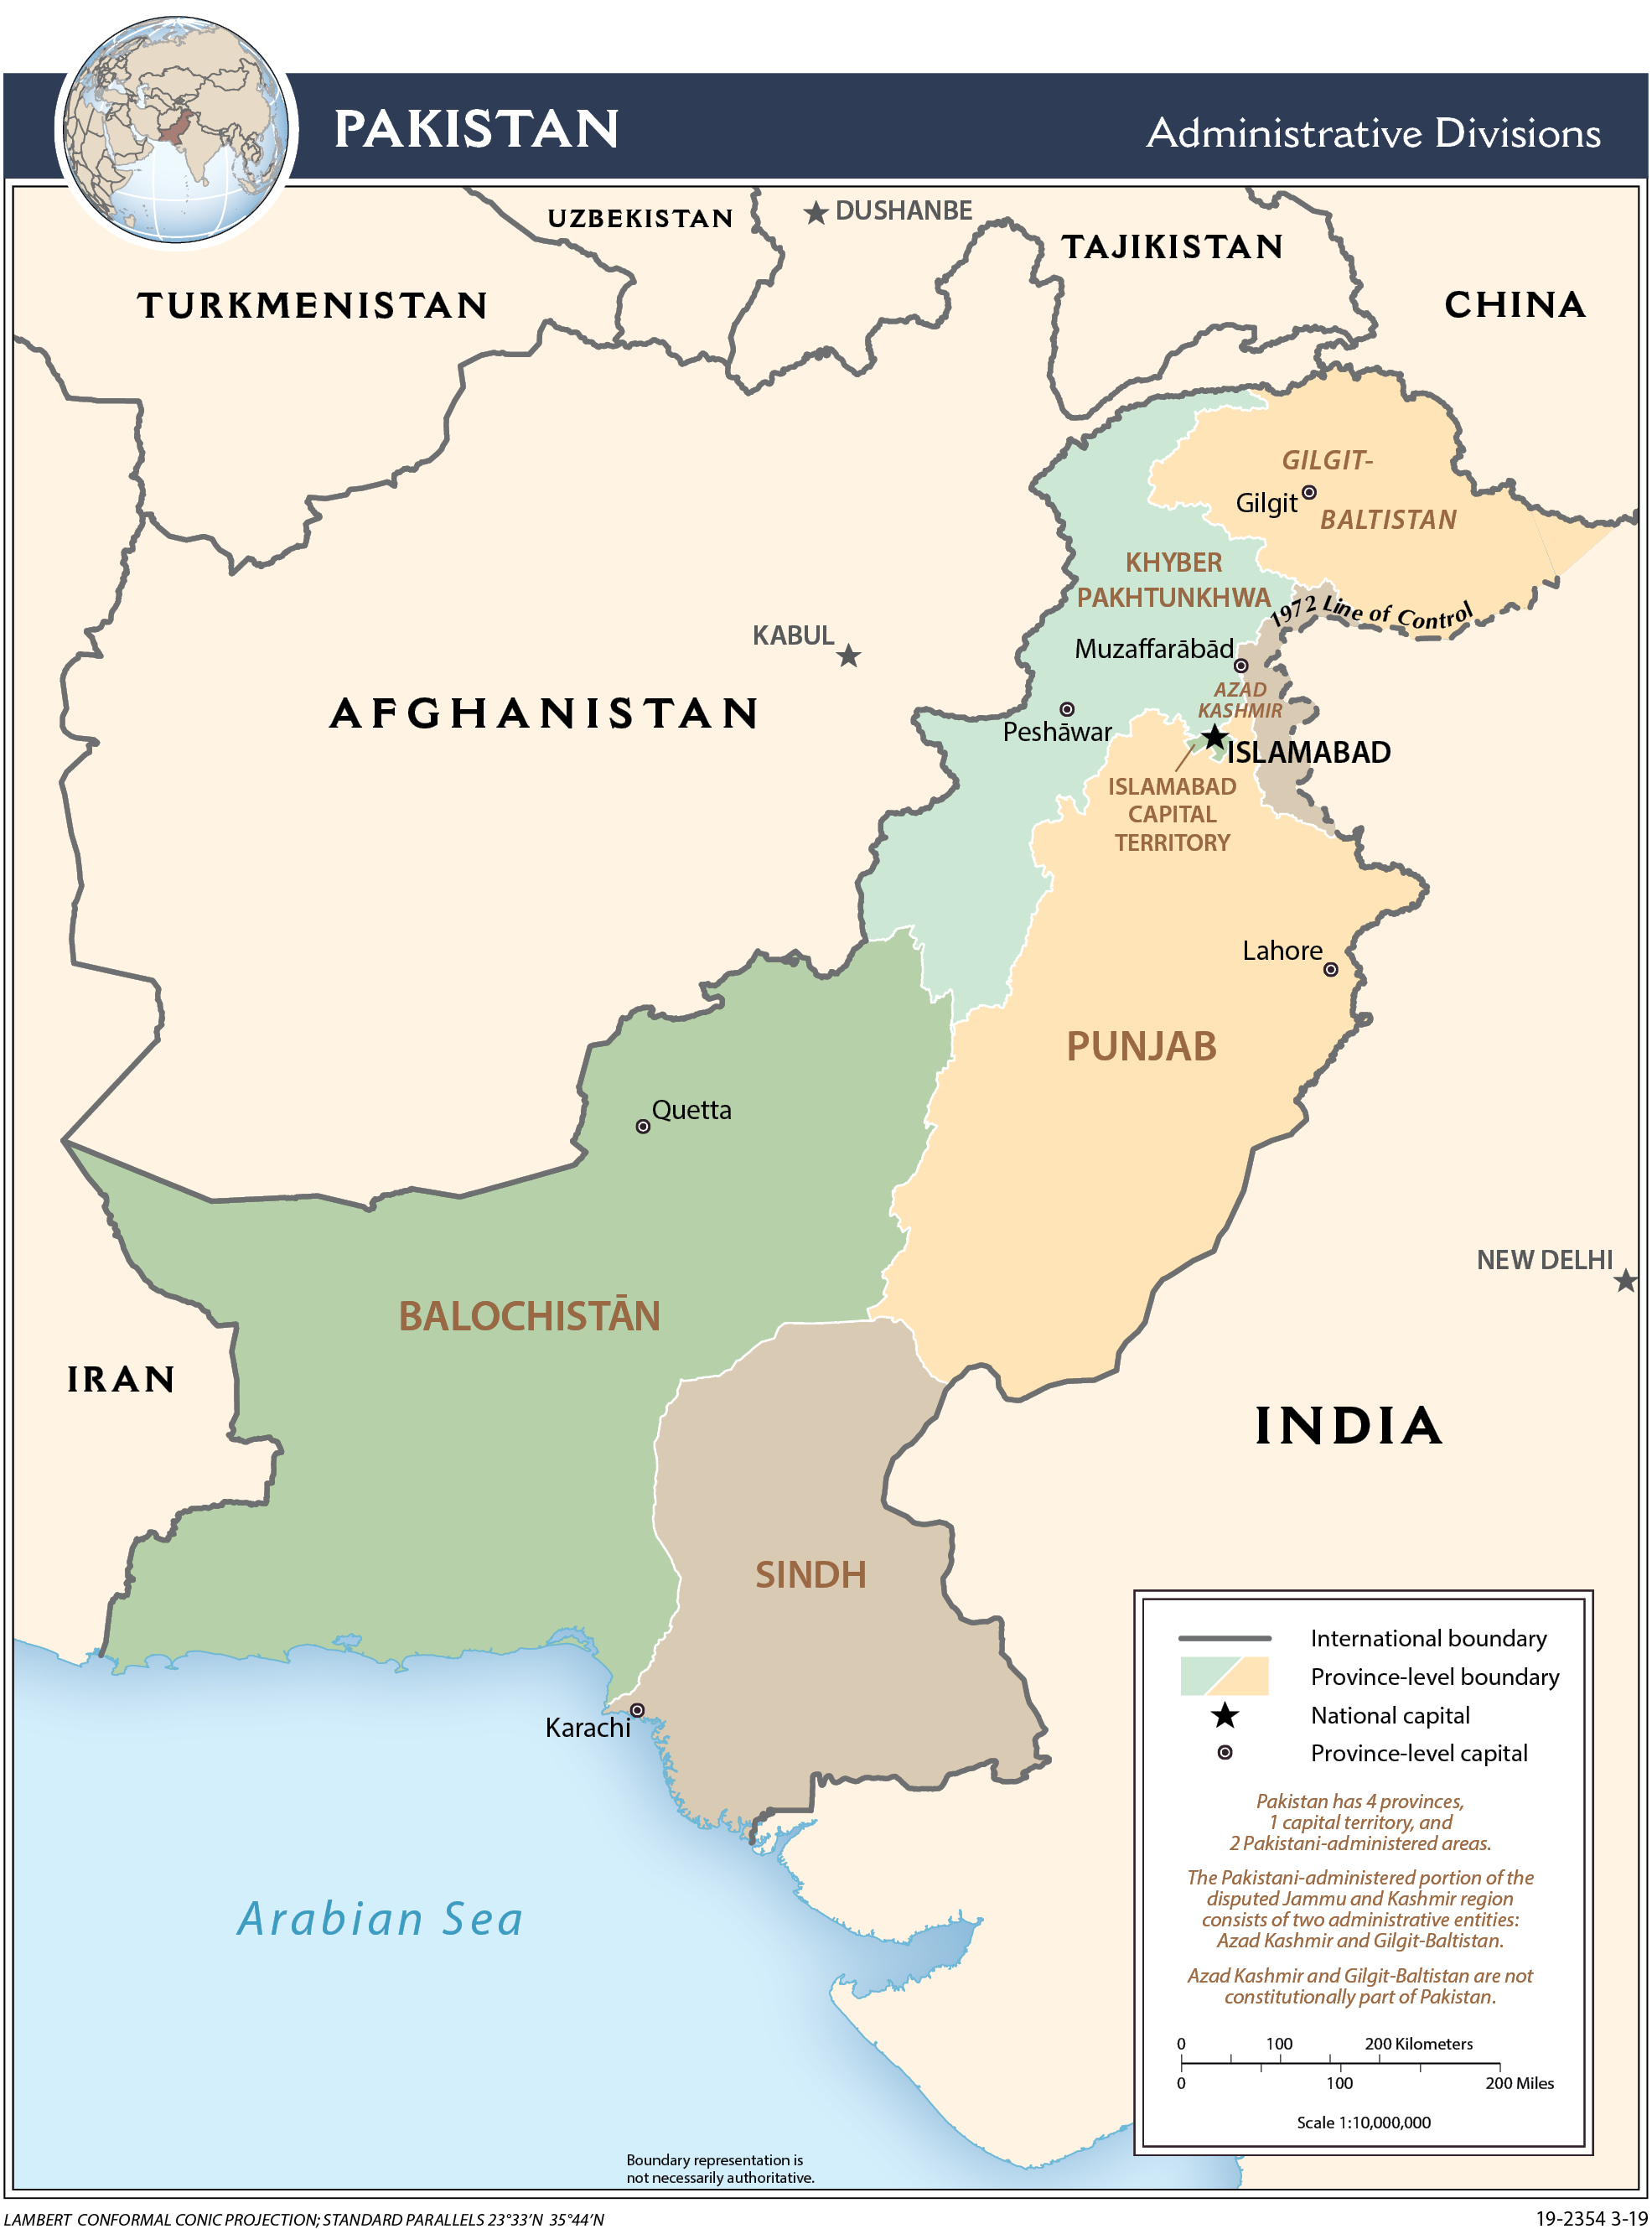 Image: Administrative Map of Pakistan